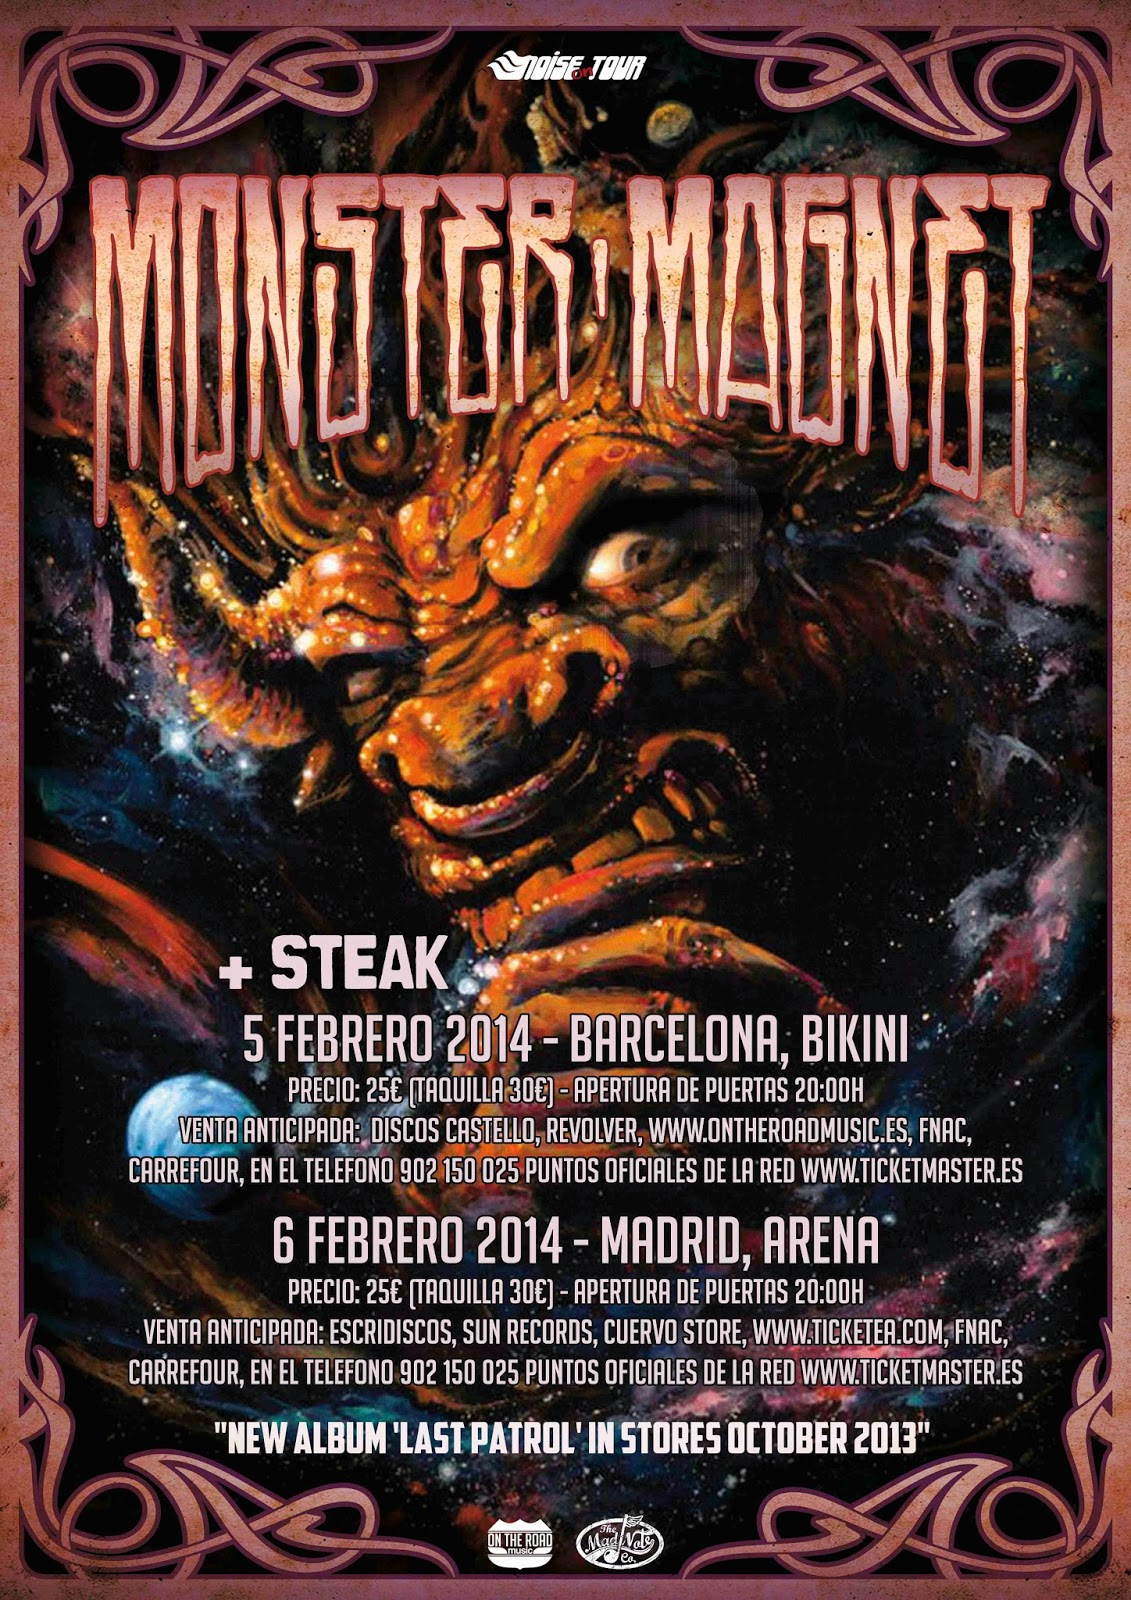 https://www.ticketea.com/entradas-monster-magnet-madrid/?a_aid=TKTMKTG&a_bid=1fb72797&gclid=CL_2hv3067sCFRMRtAodHz4AKA